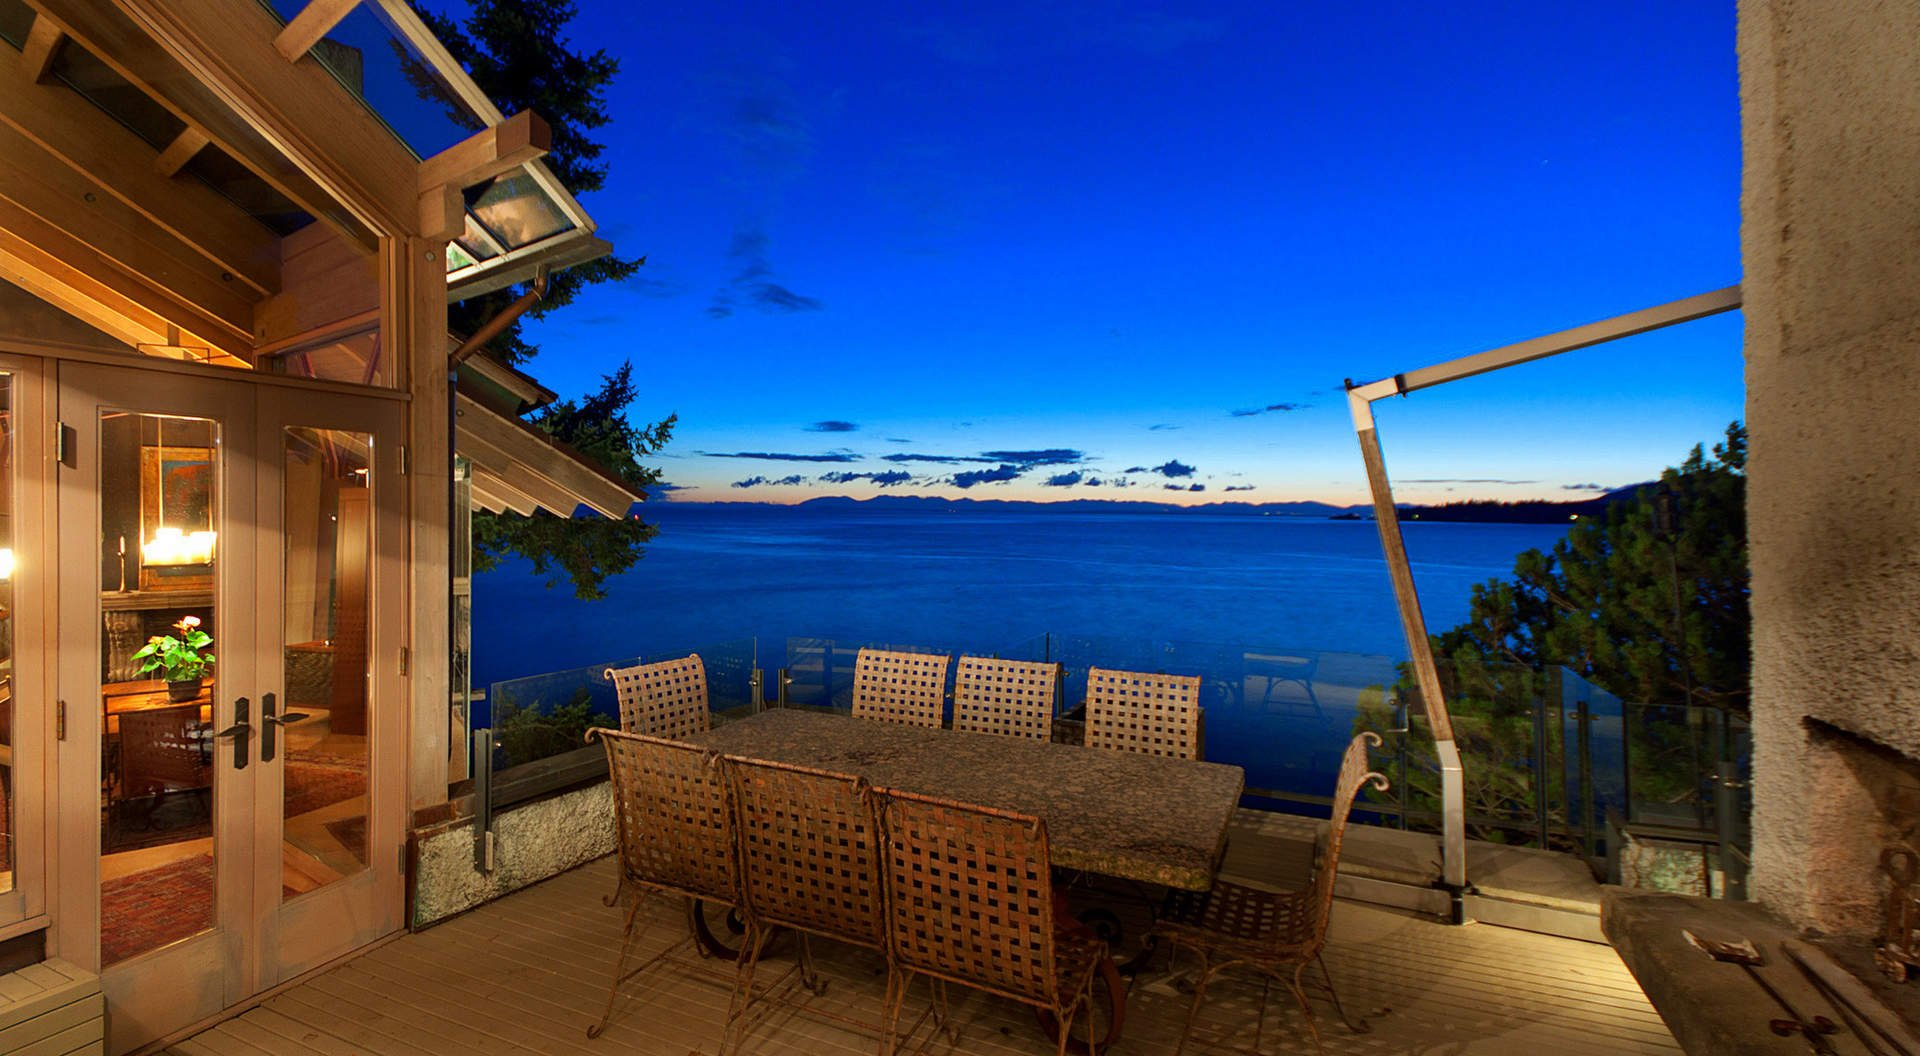 A dream by the water - west vancouver, bc - enpundit.